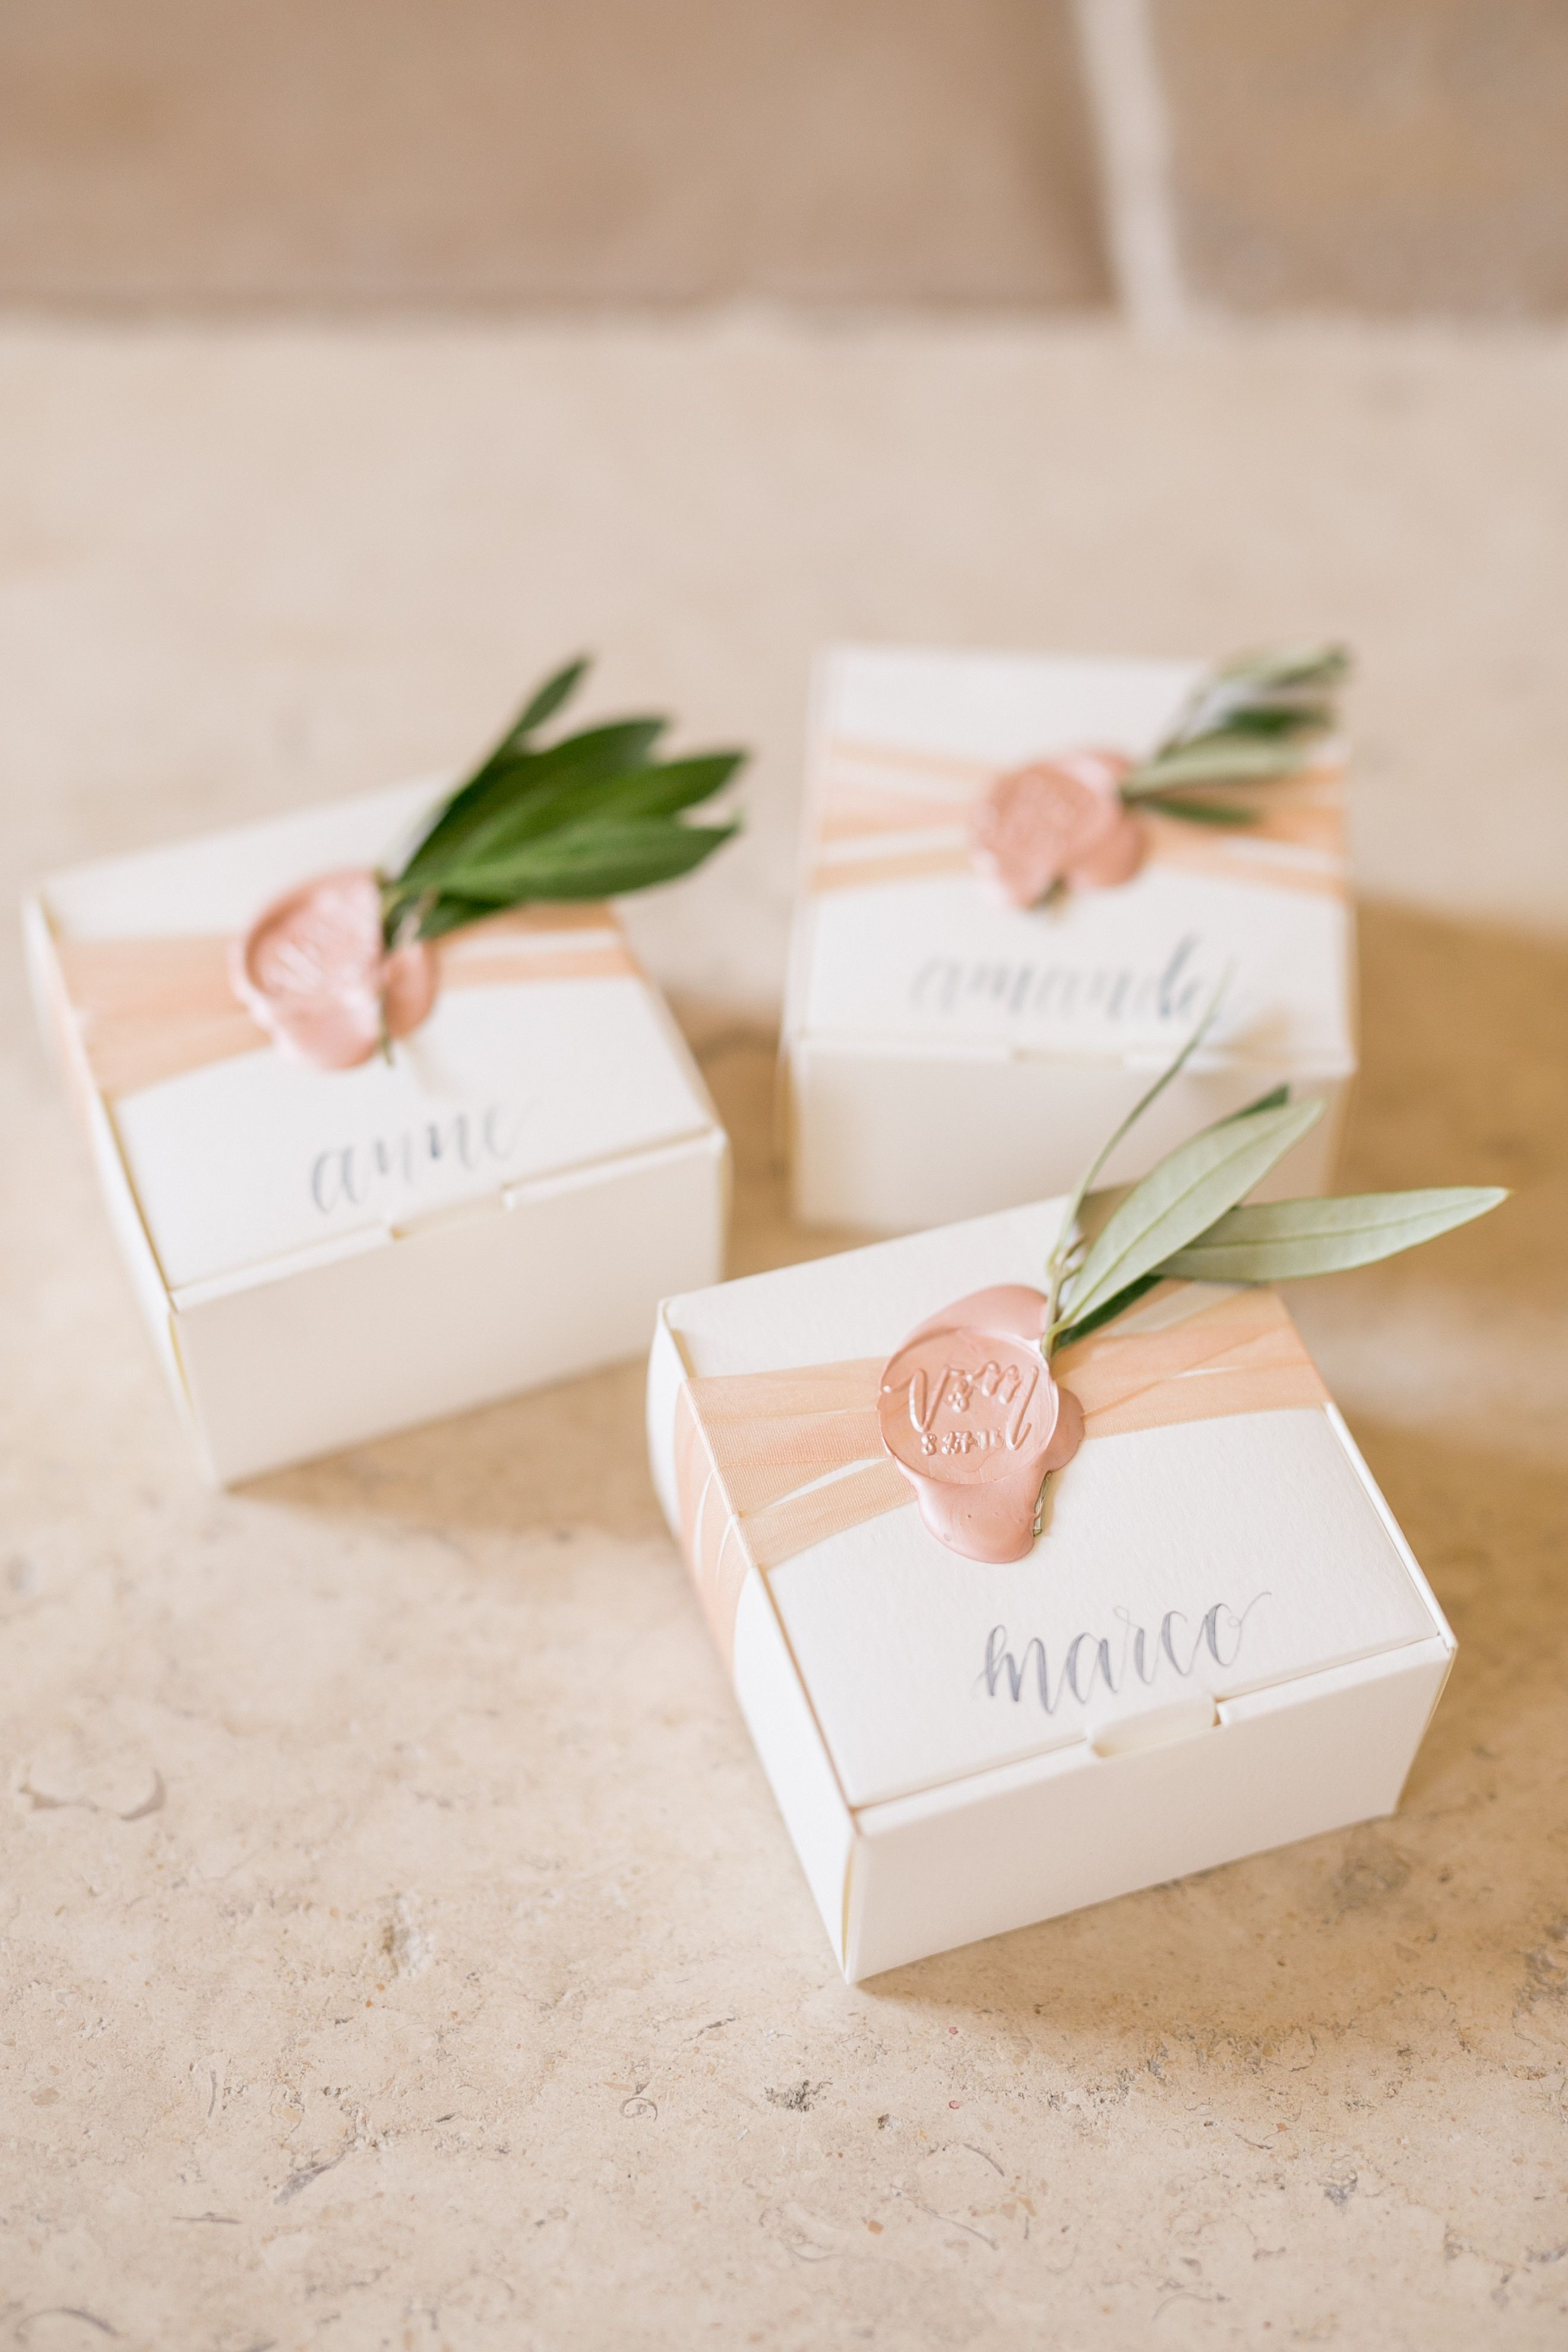 free shipping,Personalized gift wedding chocolate natural cardboard 40 pcs.weddings favours boxs wedding gift favours gift for wedding